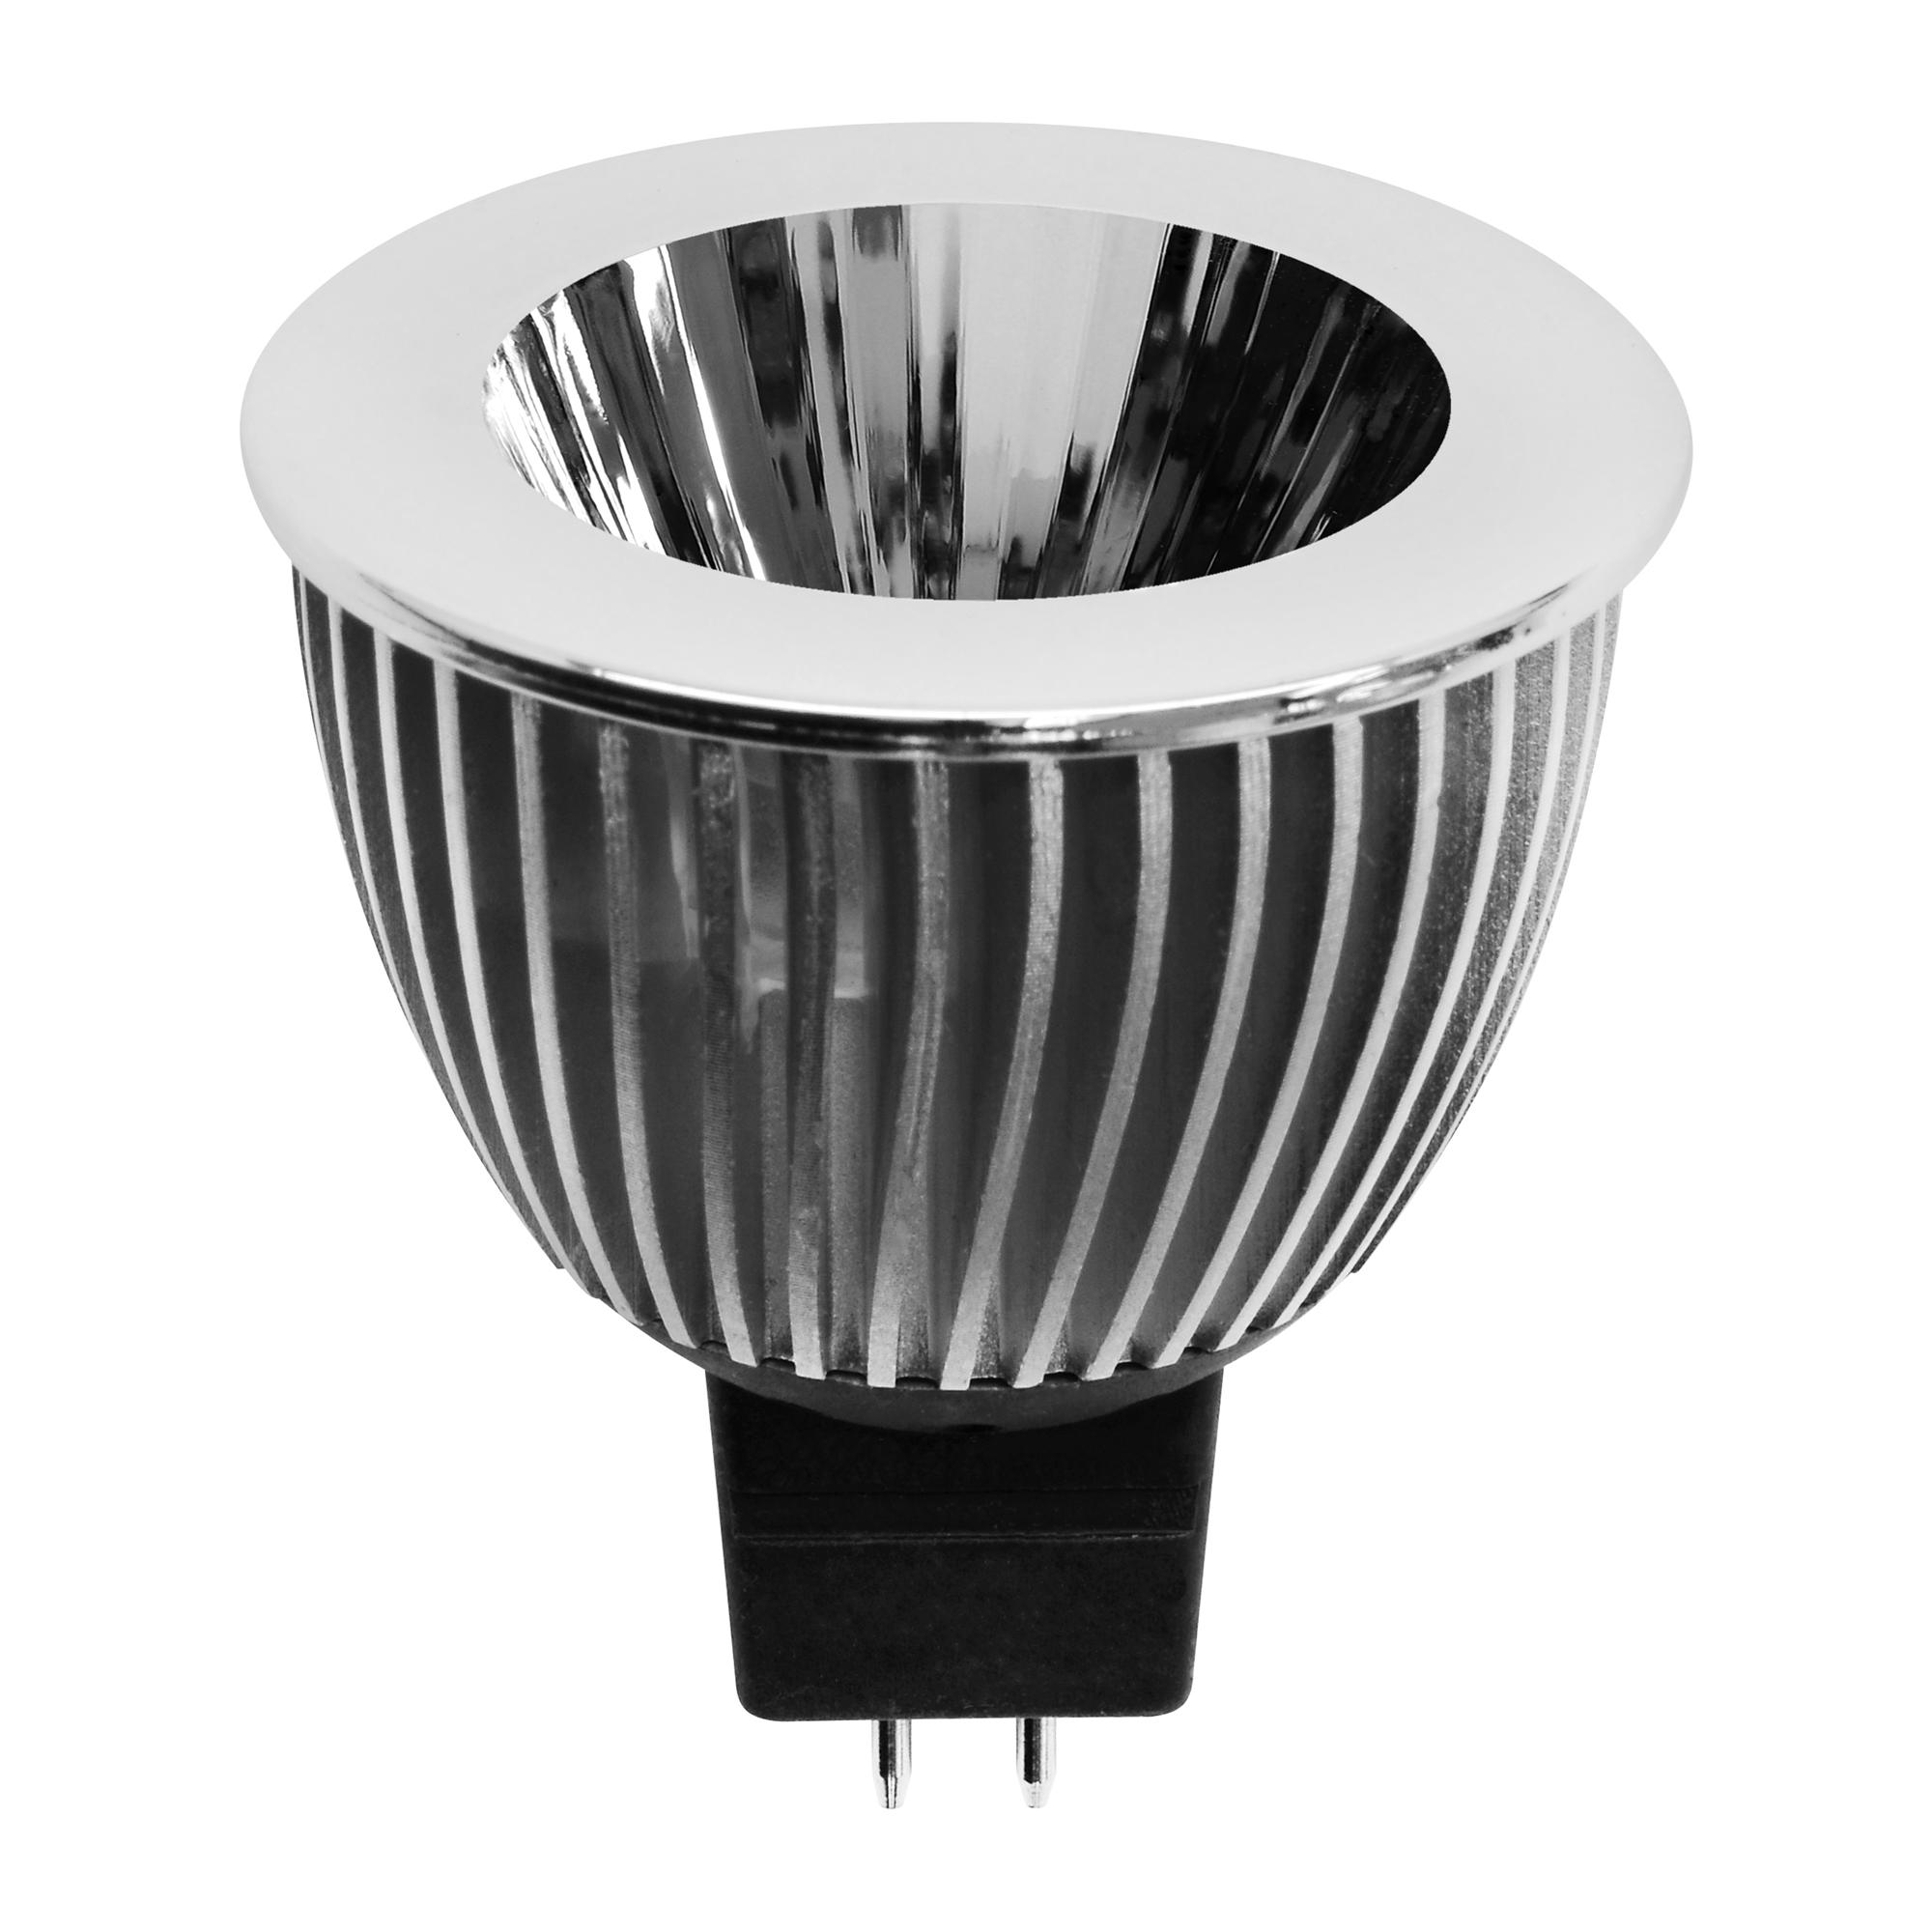 Mr16 Dimmable Led Uk: MR16 LED & Driver 7W 630lm (=75W) Dimmable 24° 3000K Warm